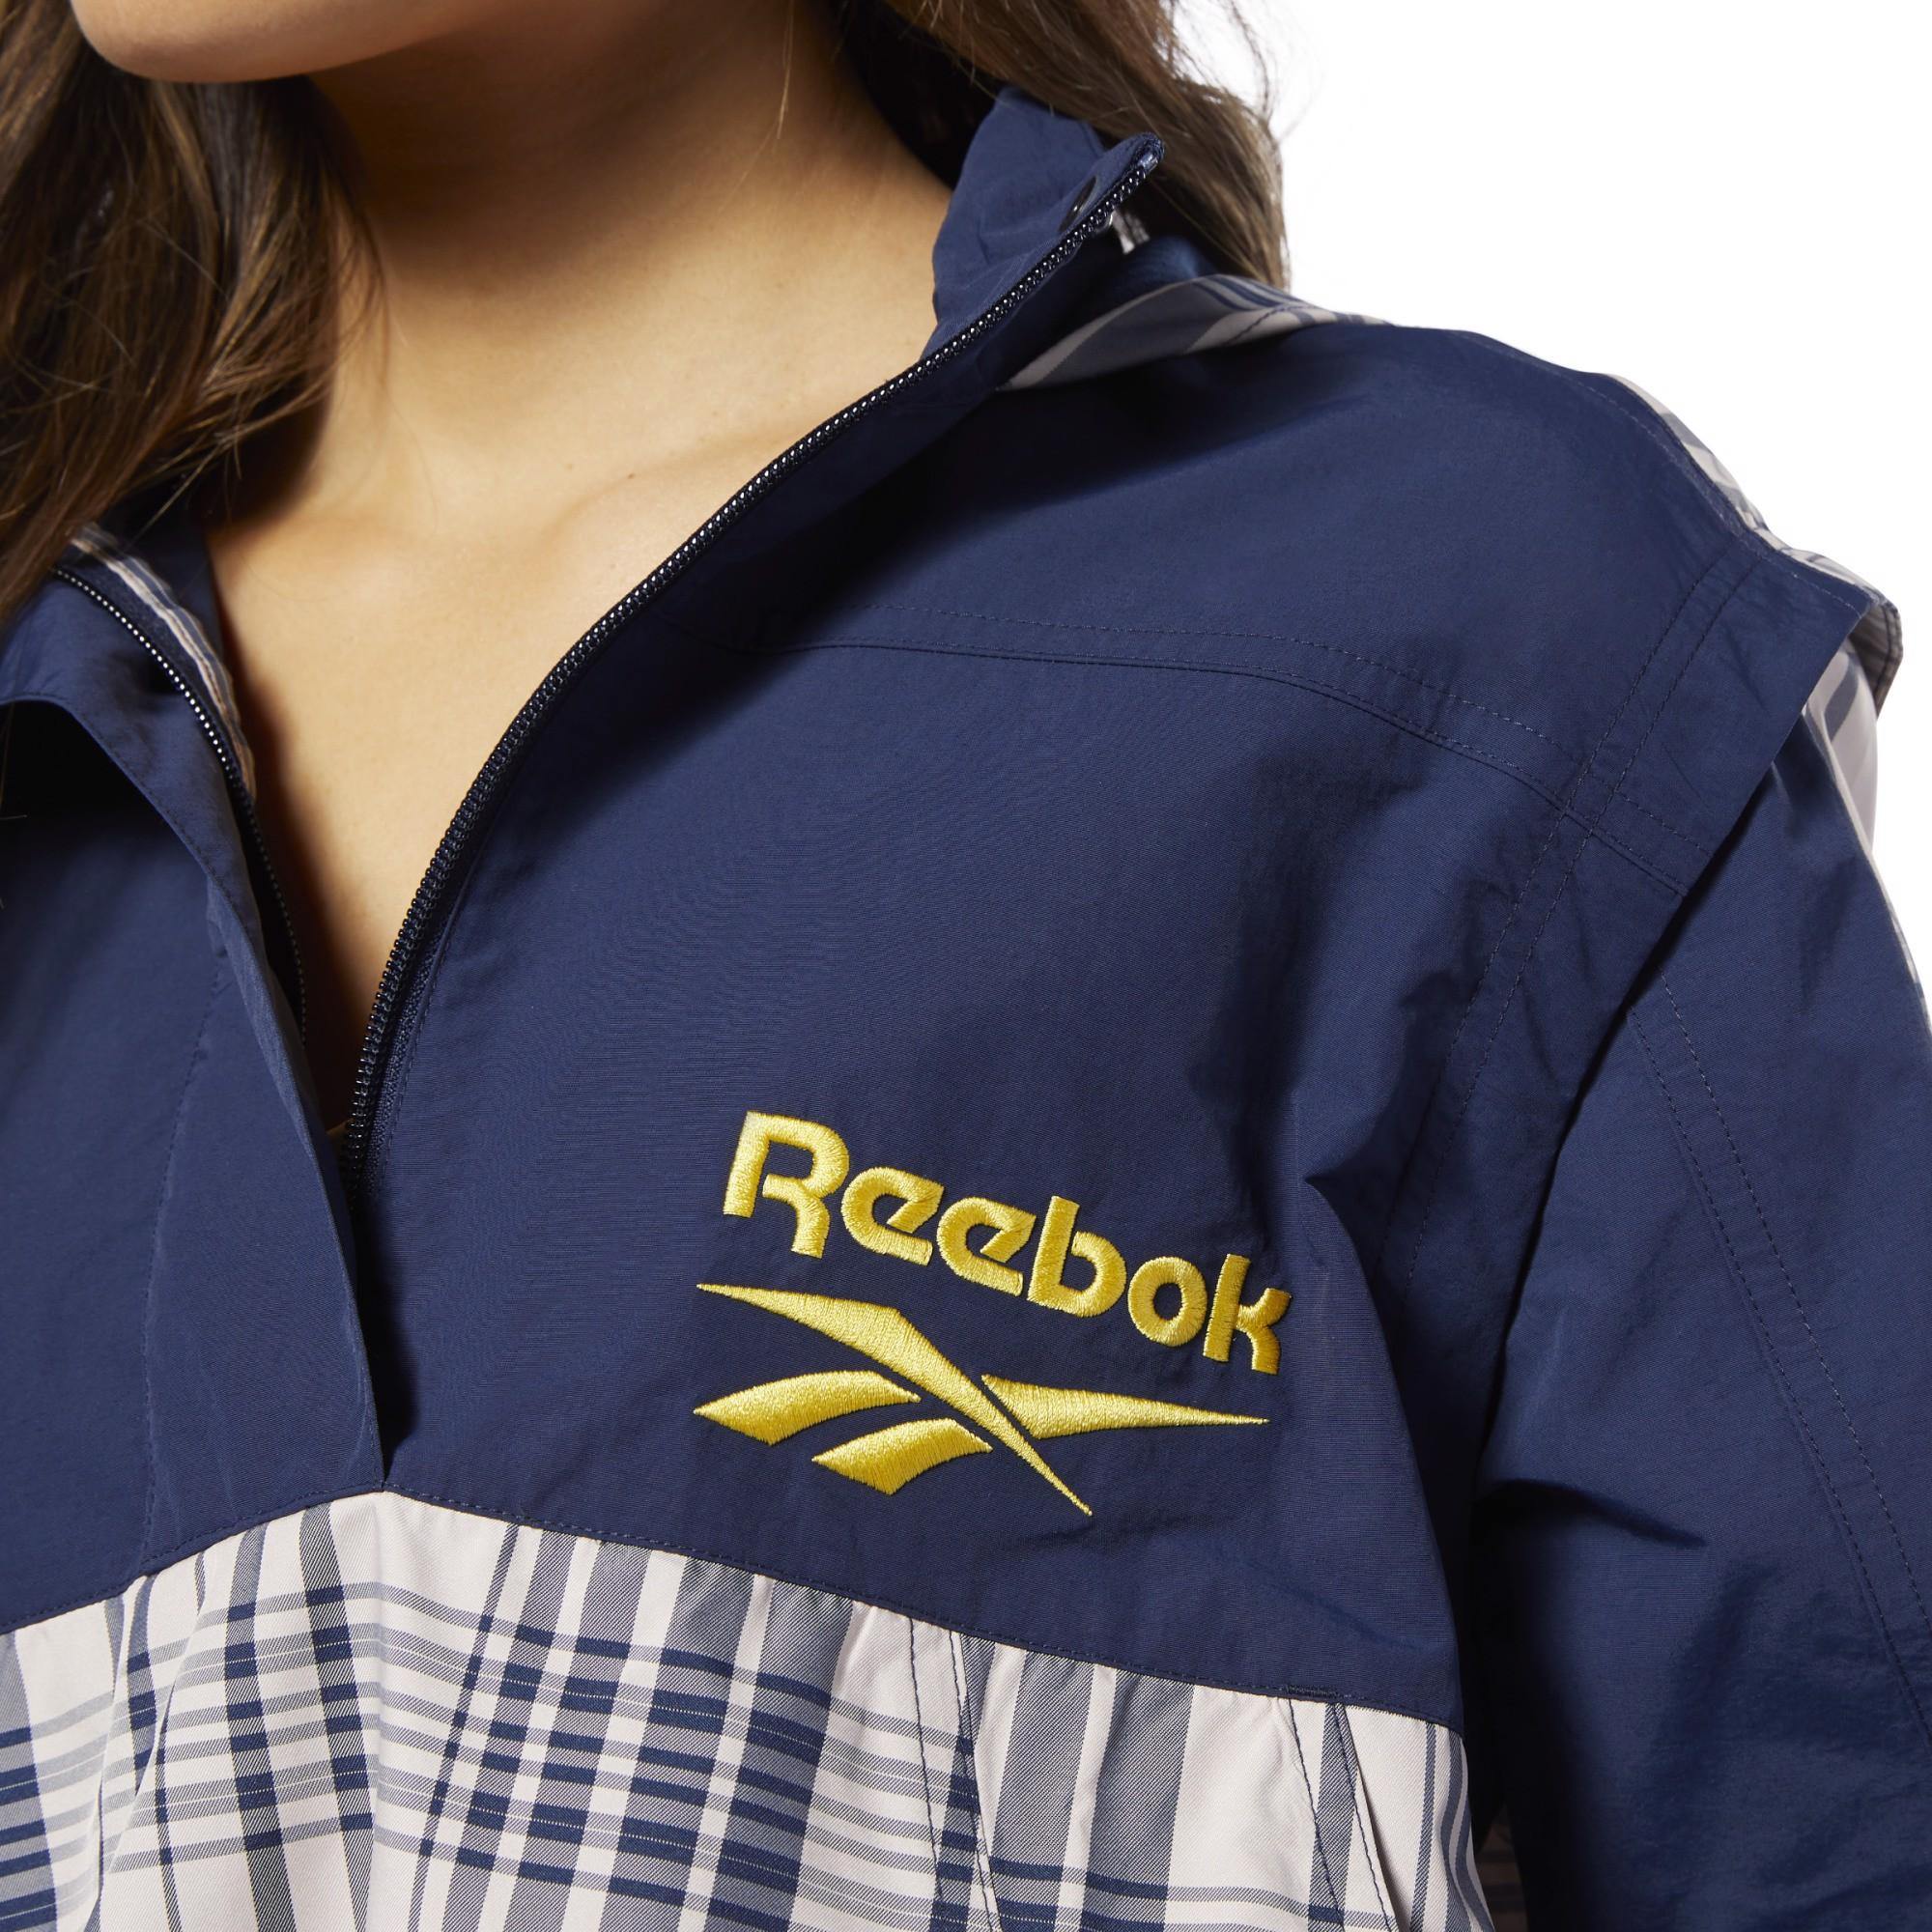 Reebok Classics Vector Jacket - Buff/Collegiate Navy